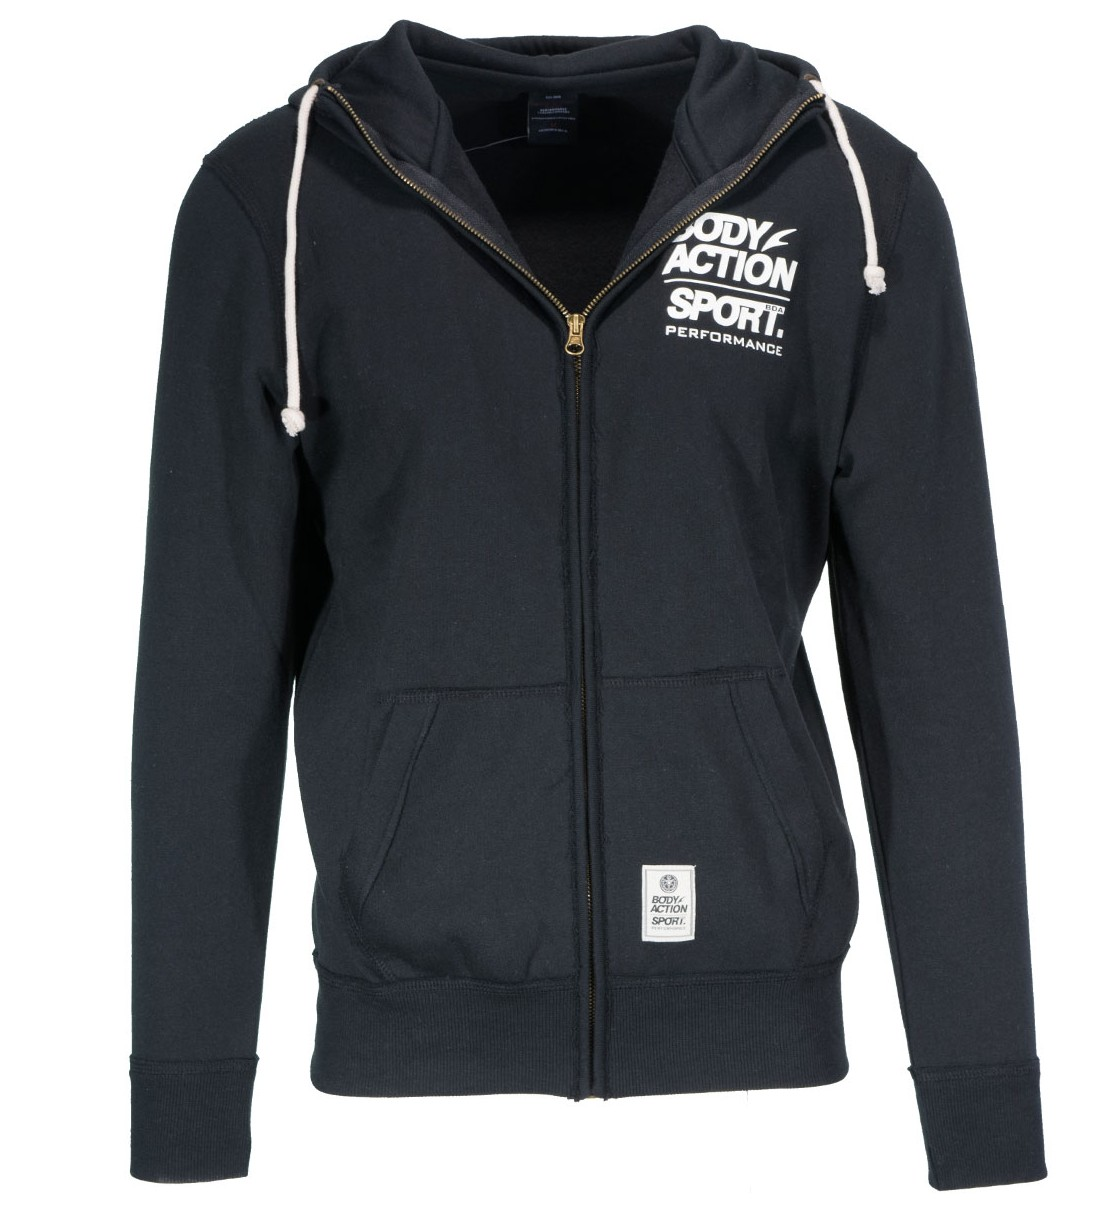 Body Action Men Hooded Jacket